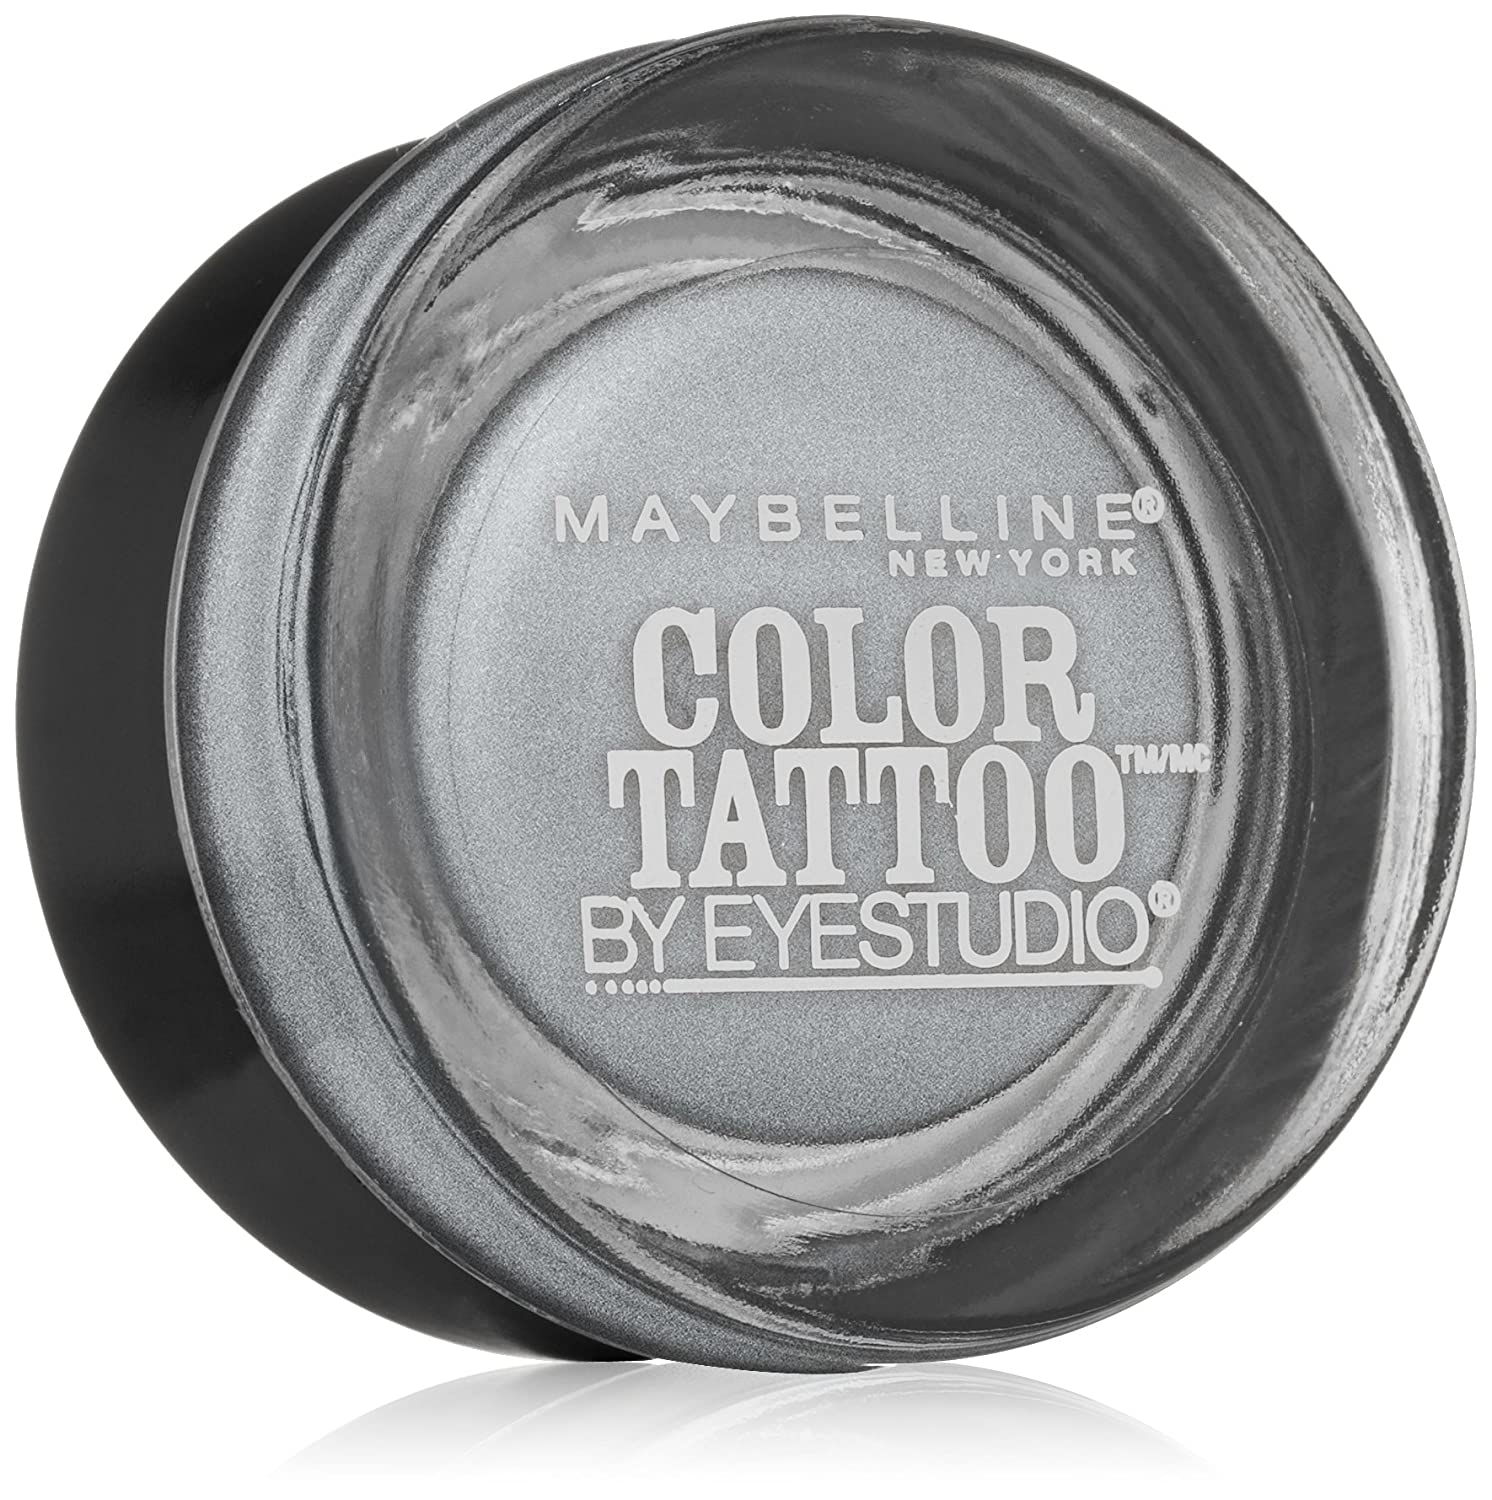 Maybelline New York Eye Studio Color Tattoo Leather 24 HR Cream Gel Eyeshadow, Deep Forest, 0.14 Ounce 749CTS-85